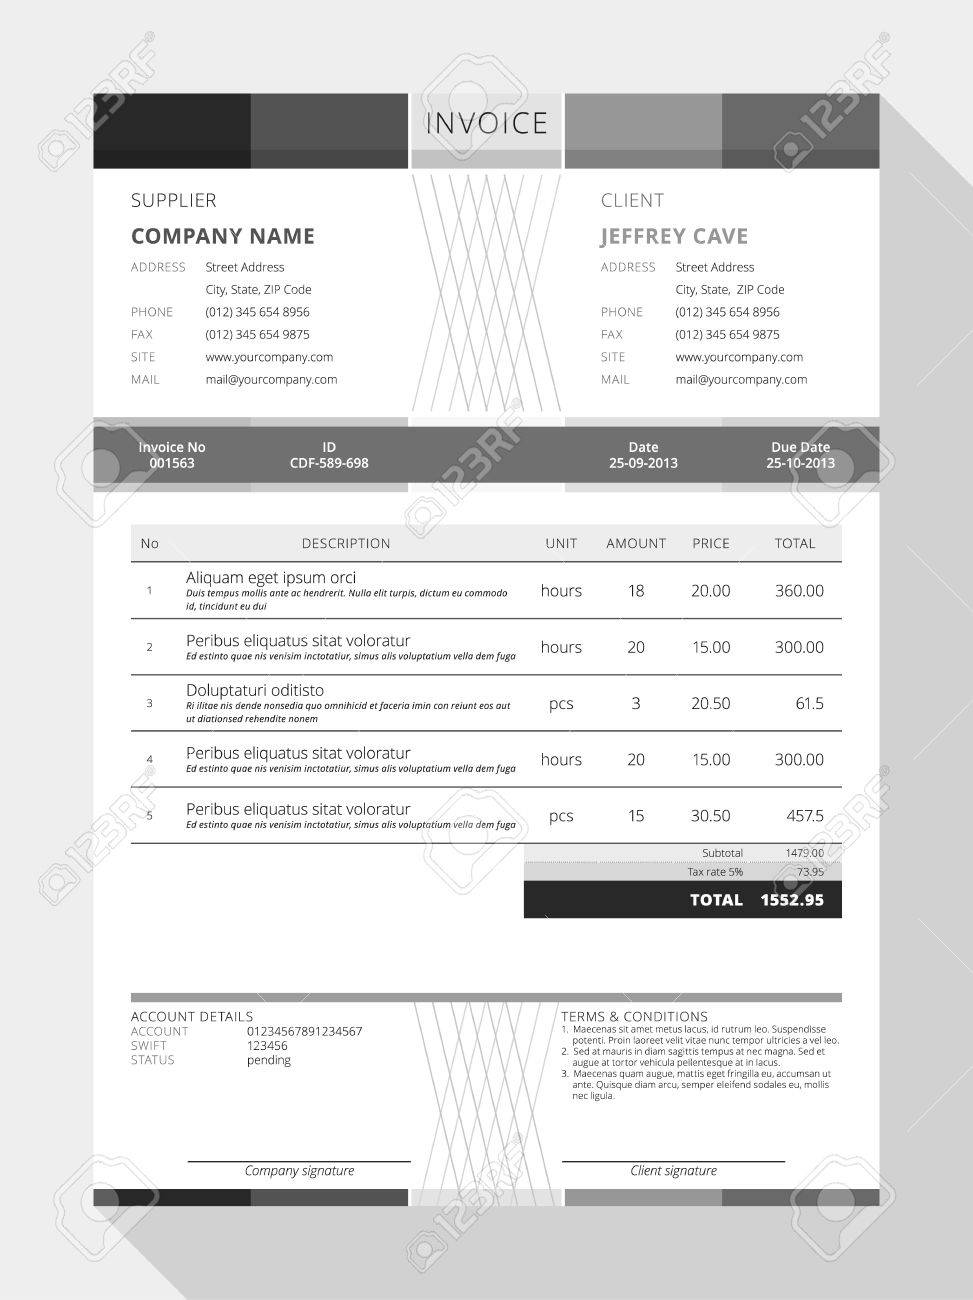 Ediblewildsus  Surprising Design An Invoice  Professional Graphic Design Invoice  With Marvelous Vector Customizable Invoice Form Template Design Vector   Design An Invoice With Agreeable Scan Receipts Into Quickbooks Also Ebay Receipt In Addition Receipt Tracking And Sample Receipt Form As Well As Receipt Lil Wayne Additionally Free Receipt From Happytomco With Ediblewildsus  Marvelous Design An Invoice  Professional Graphic Design Invoice  With Agreeable Vector Customizable Invoice Form Template Design Vector   Design An Invoice And Surprising Scan Receipts Into Quickbooks Also Ebay Receipt In Addition Receipt Tracking From Happytomco